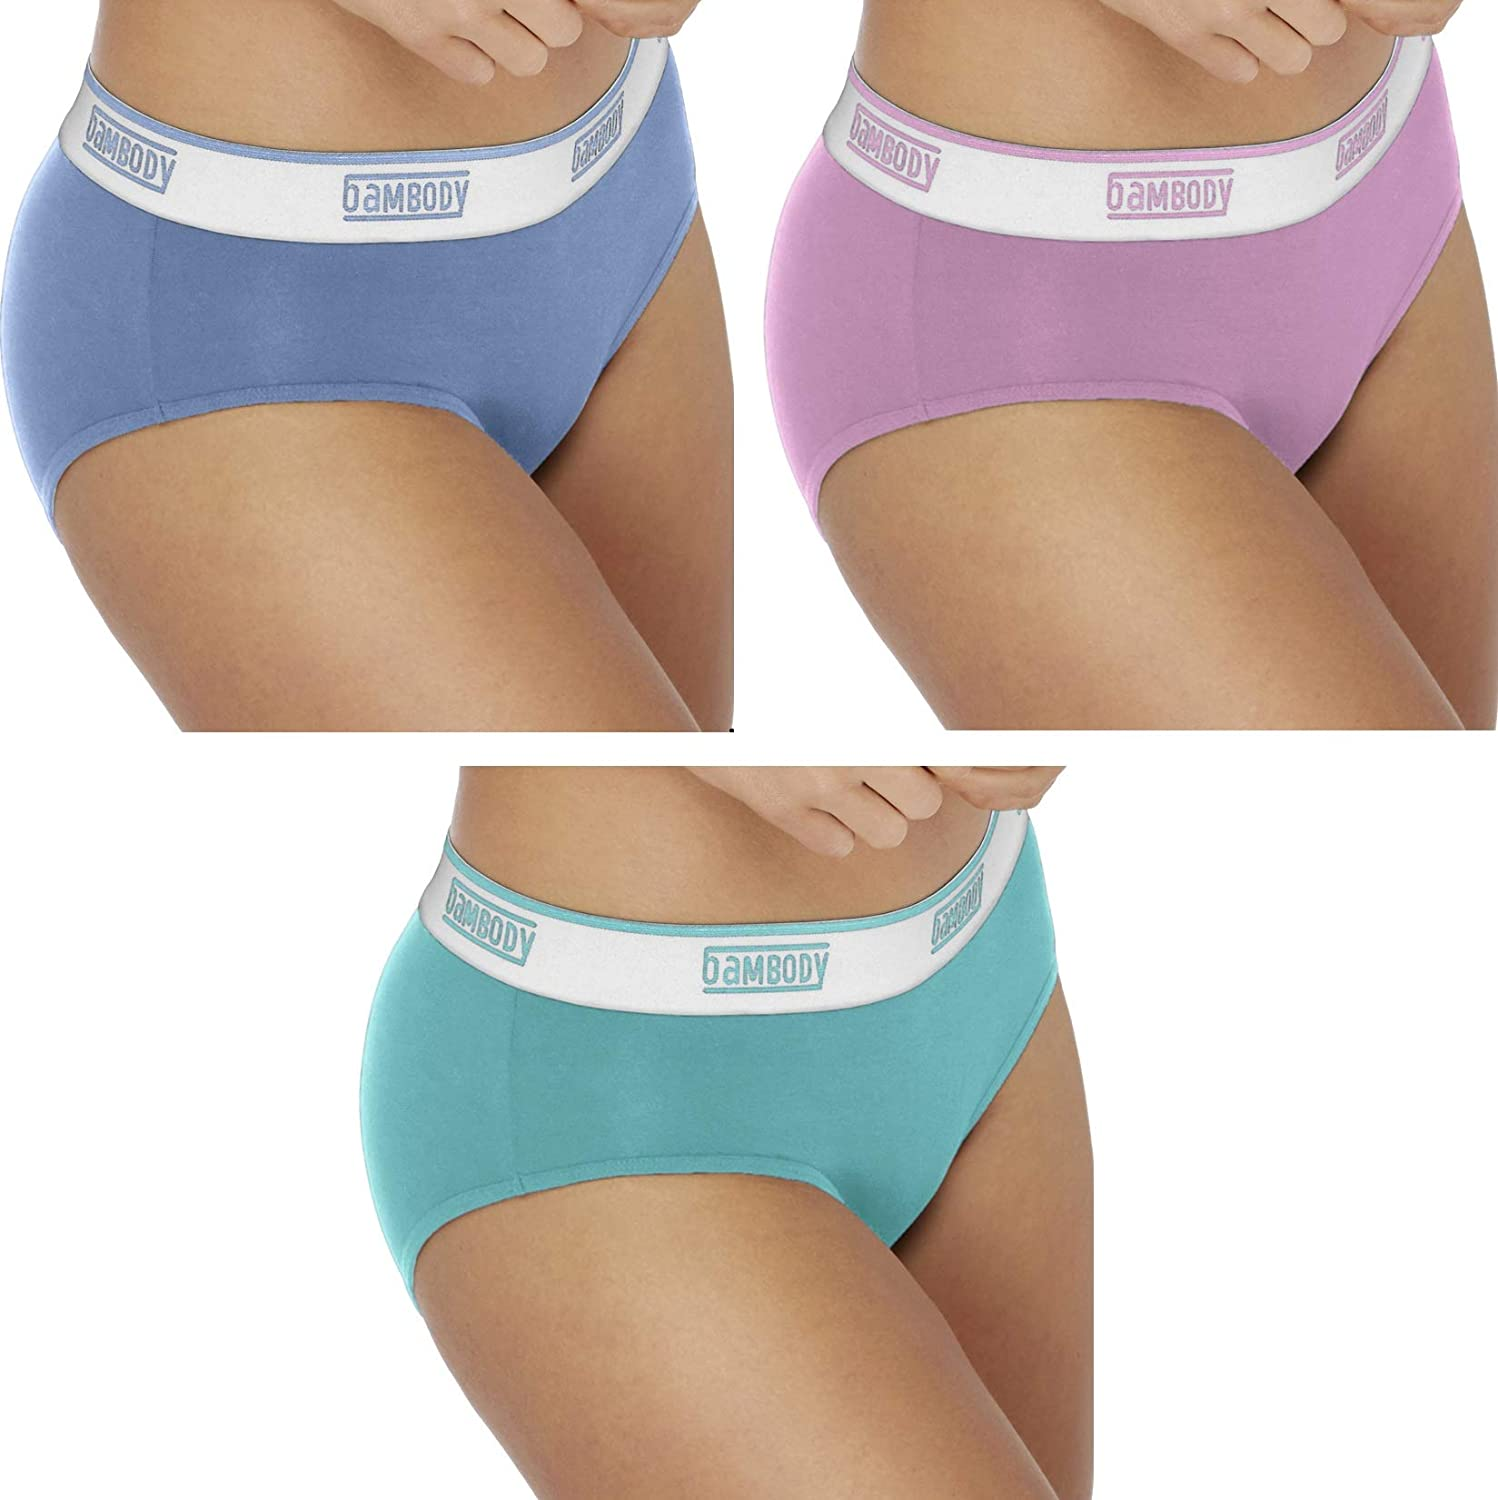 Sporty Period Panties Protective Active Wear Underwear Bambody Absorbent Hipster